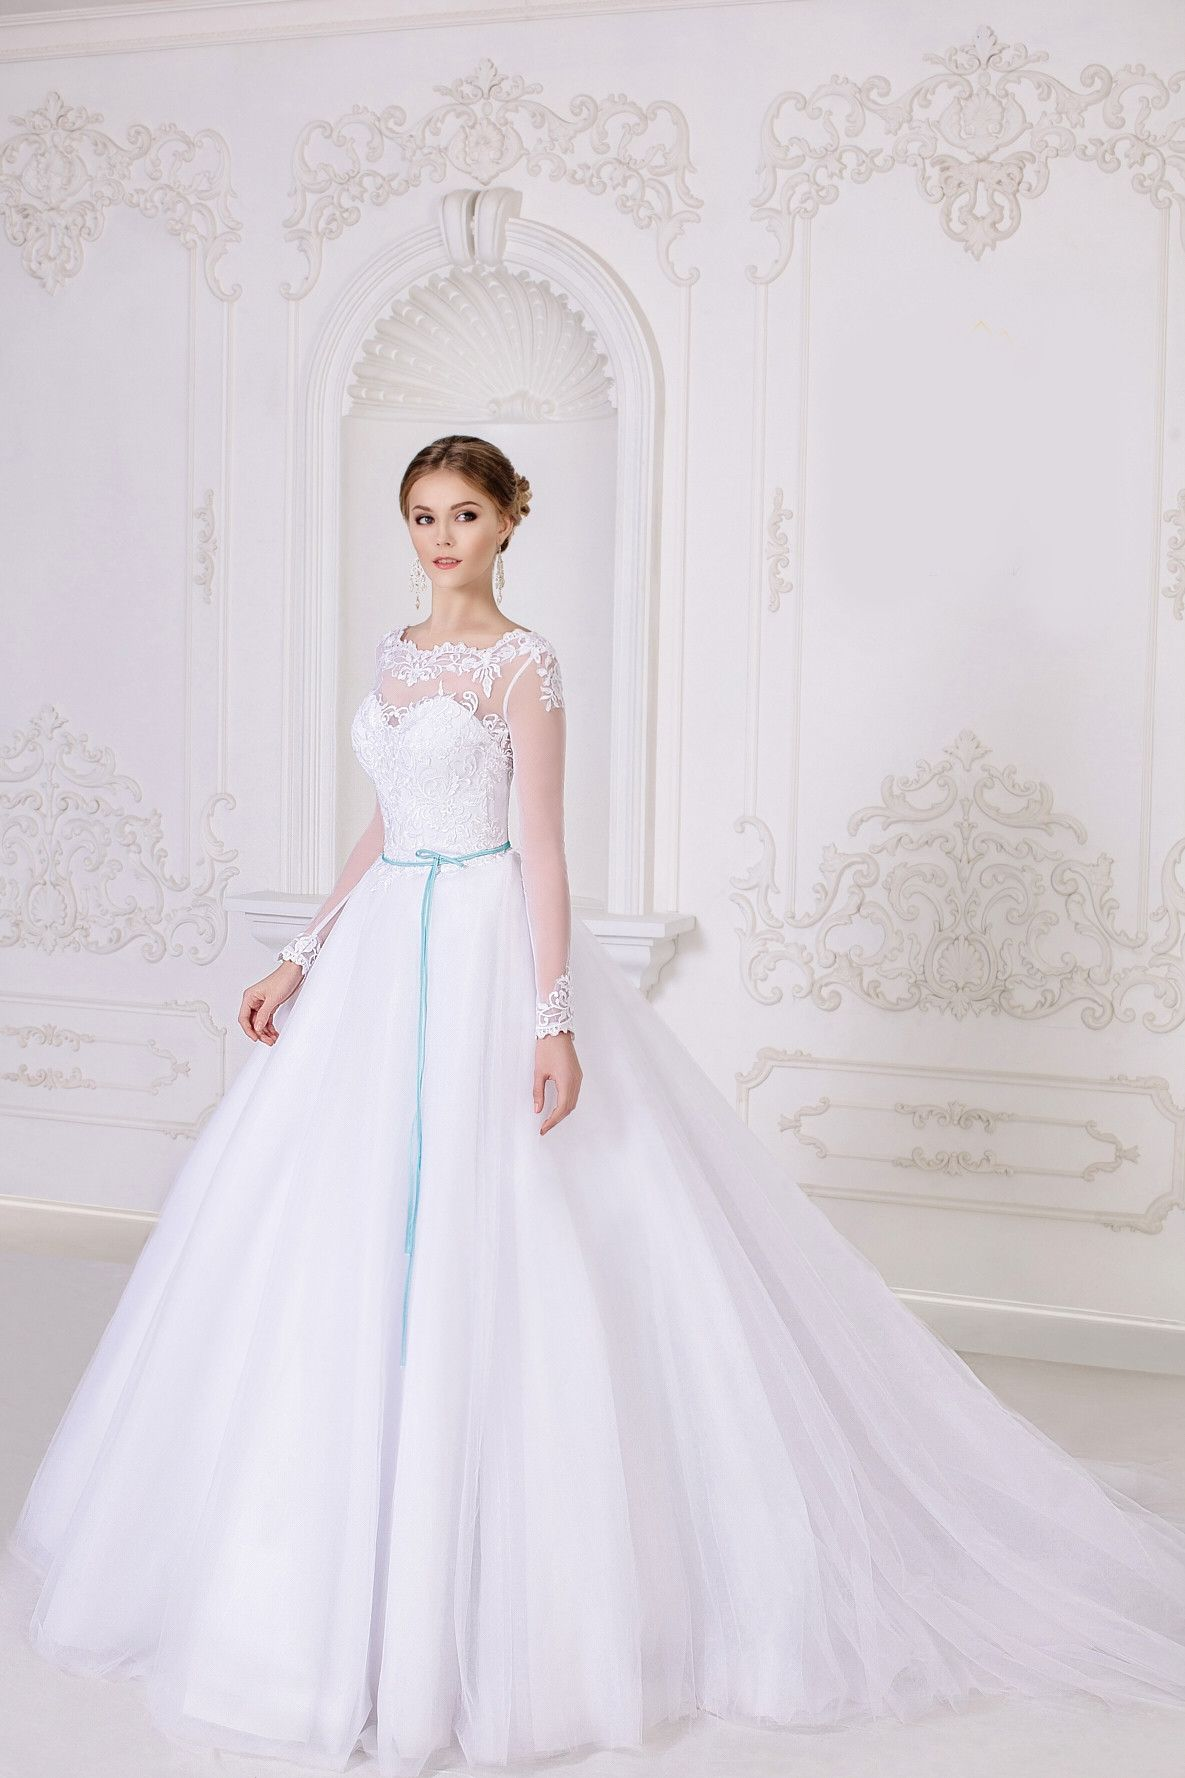 Wedding dresses ball gown lace  Ball Gown Tulle Wedding Dress  Wedding Dresses  Pinterest  Ball